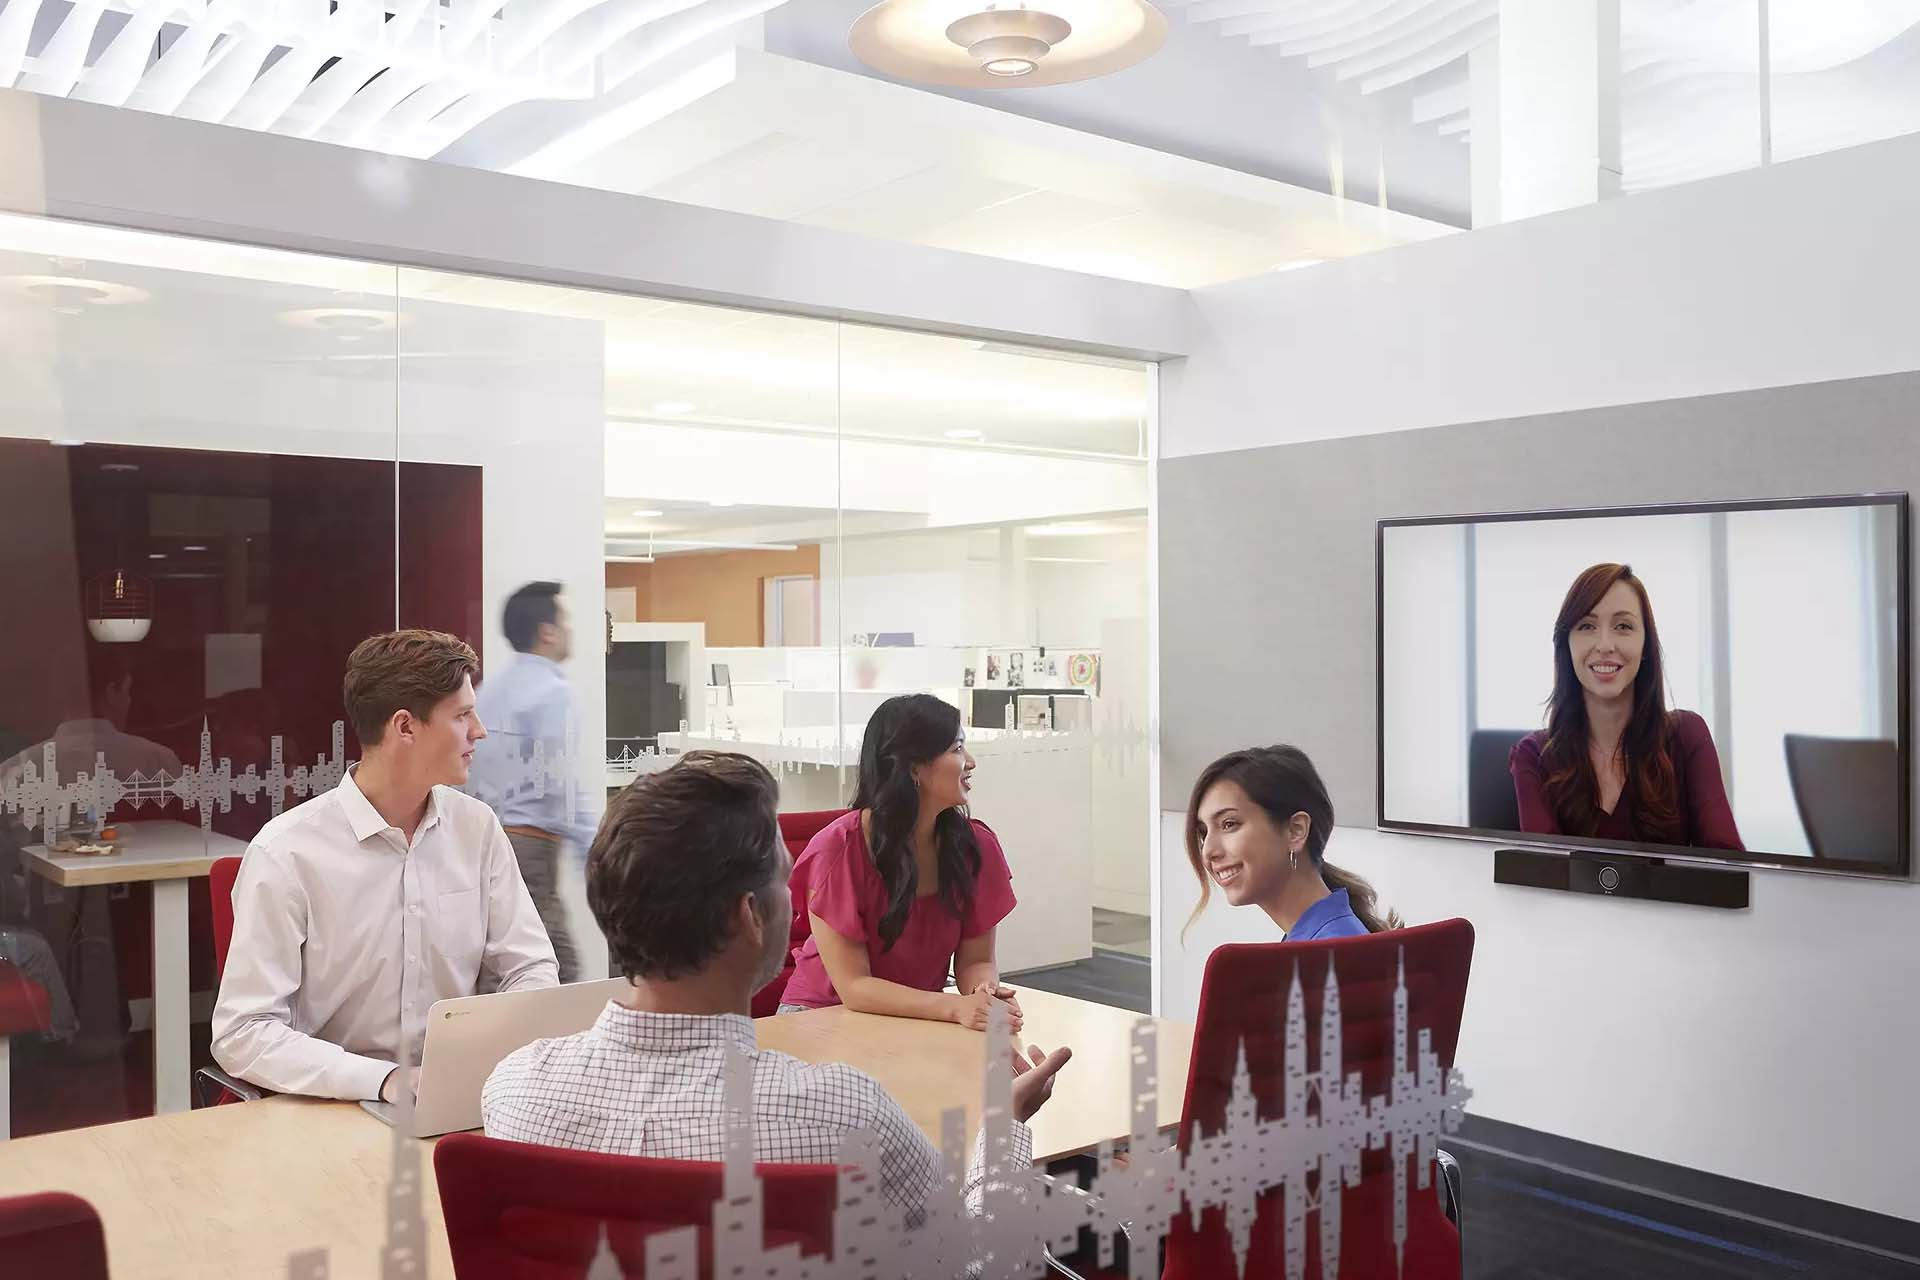 poly studio video conference bars